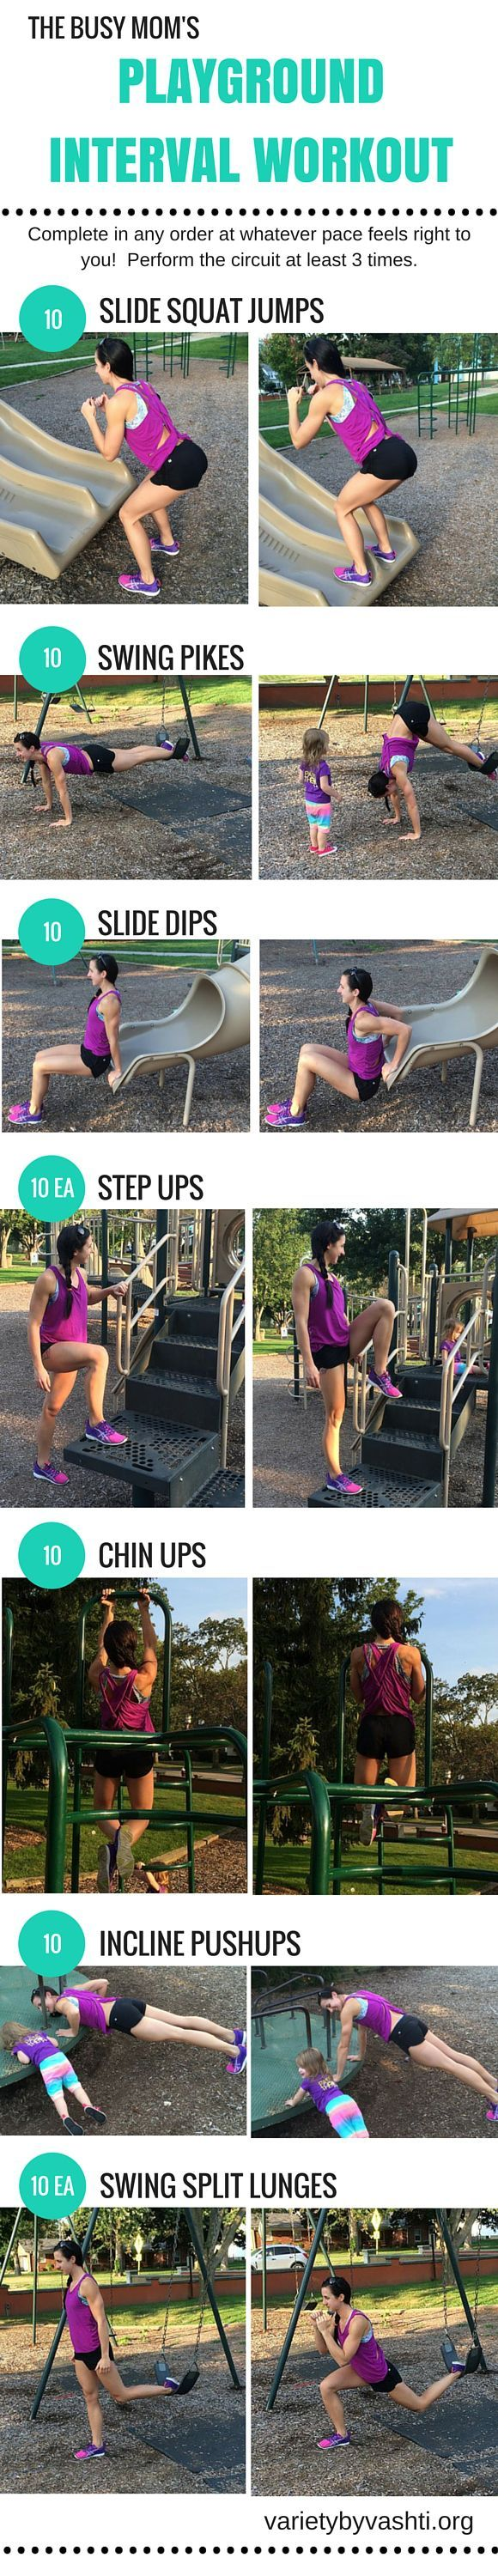 10 Huge Rewards of Taking Your Workout Outside + Circuit Workout for the park! #outdoorworkout